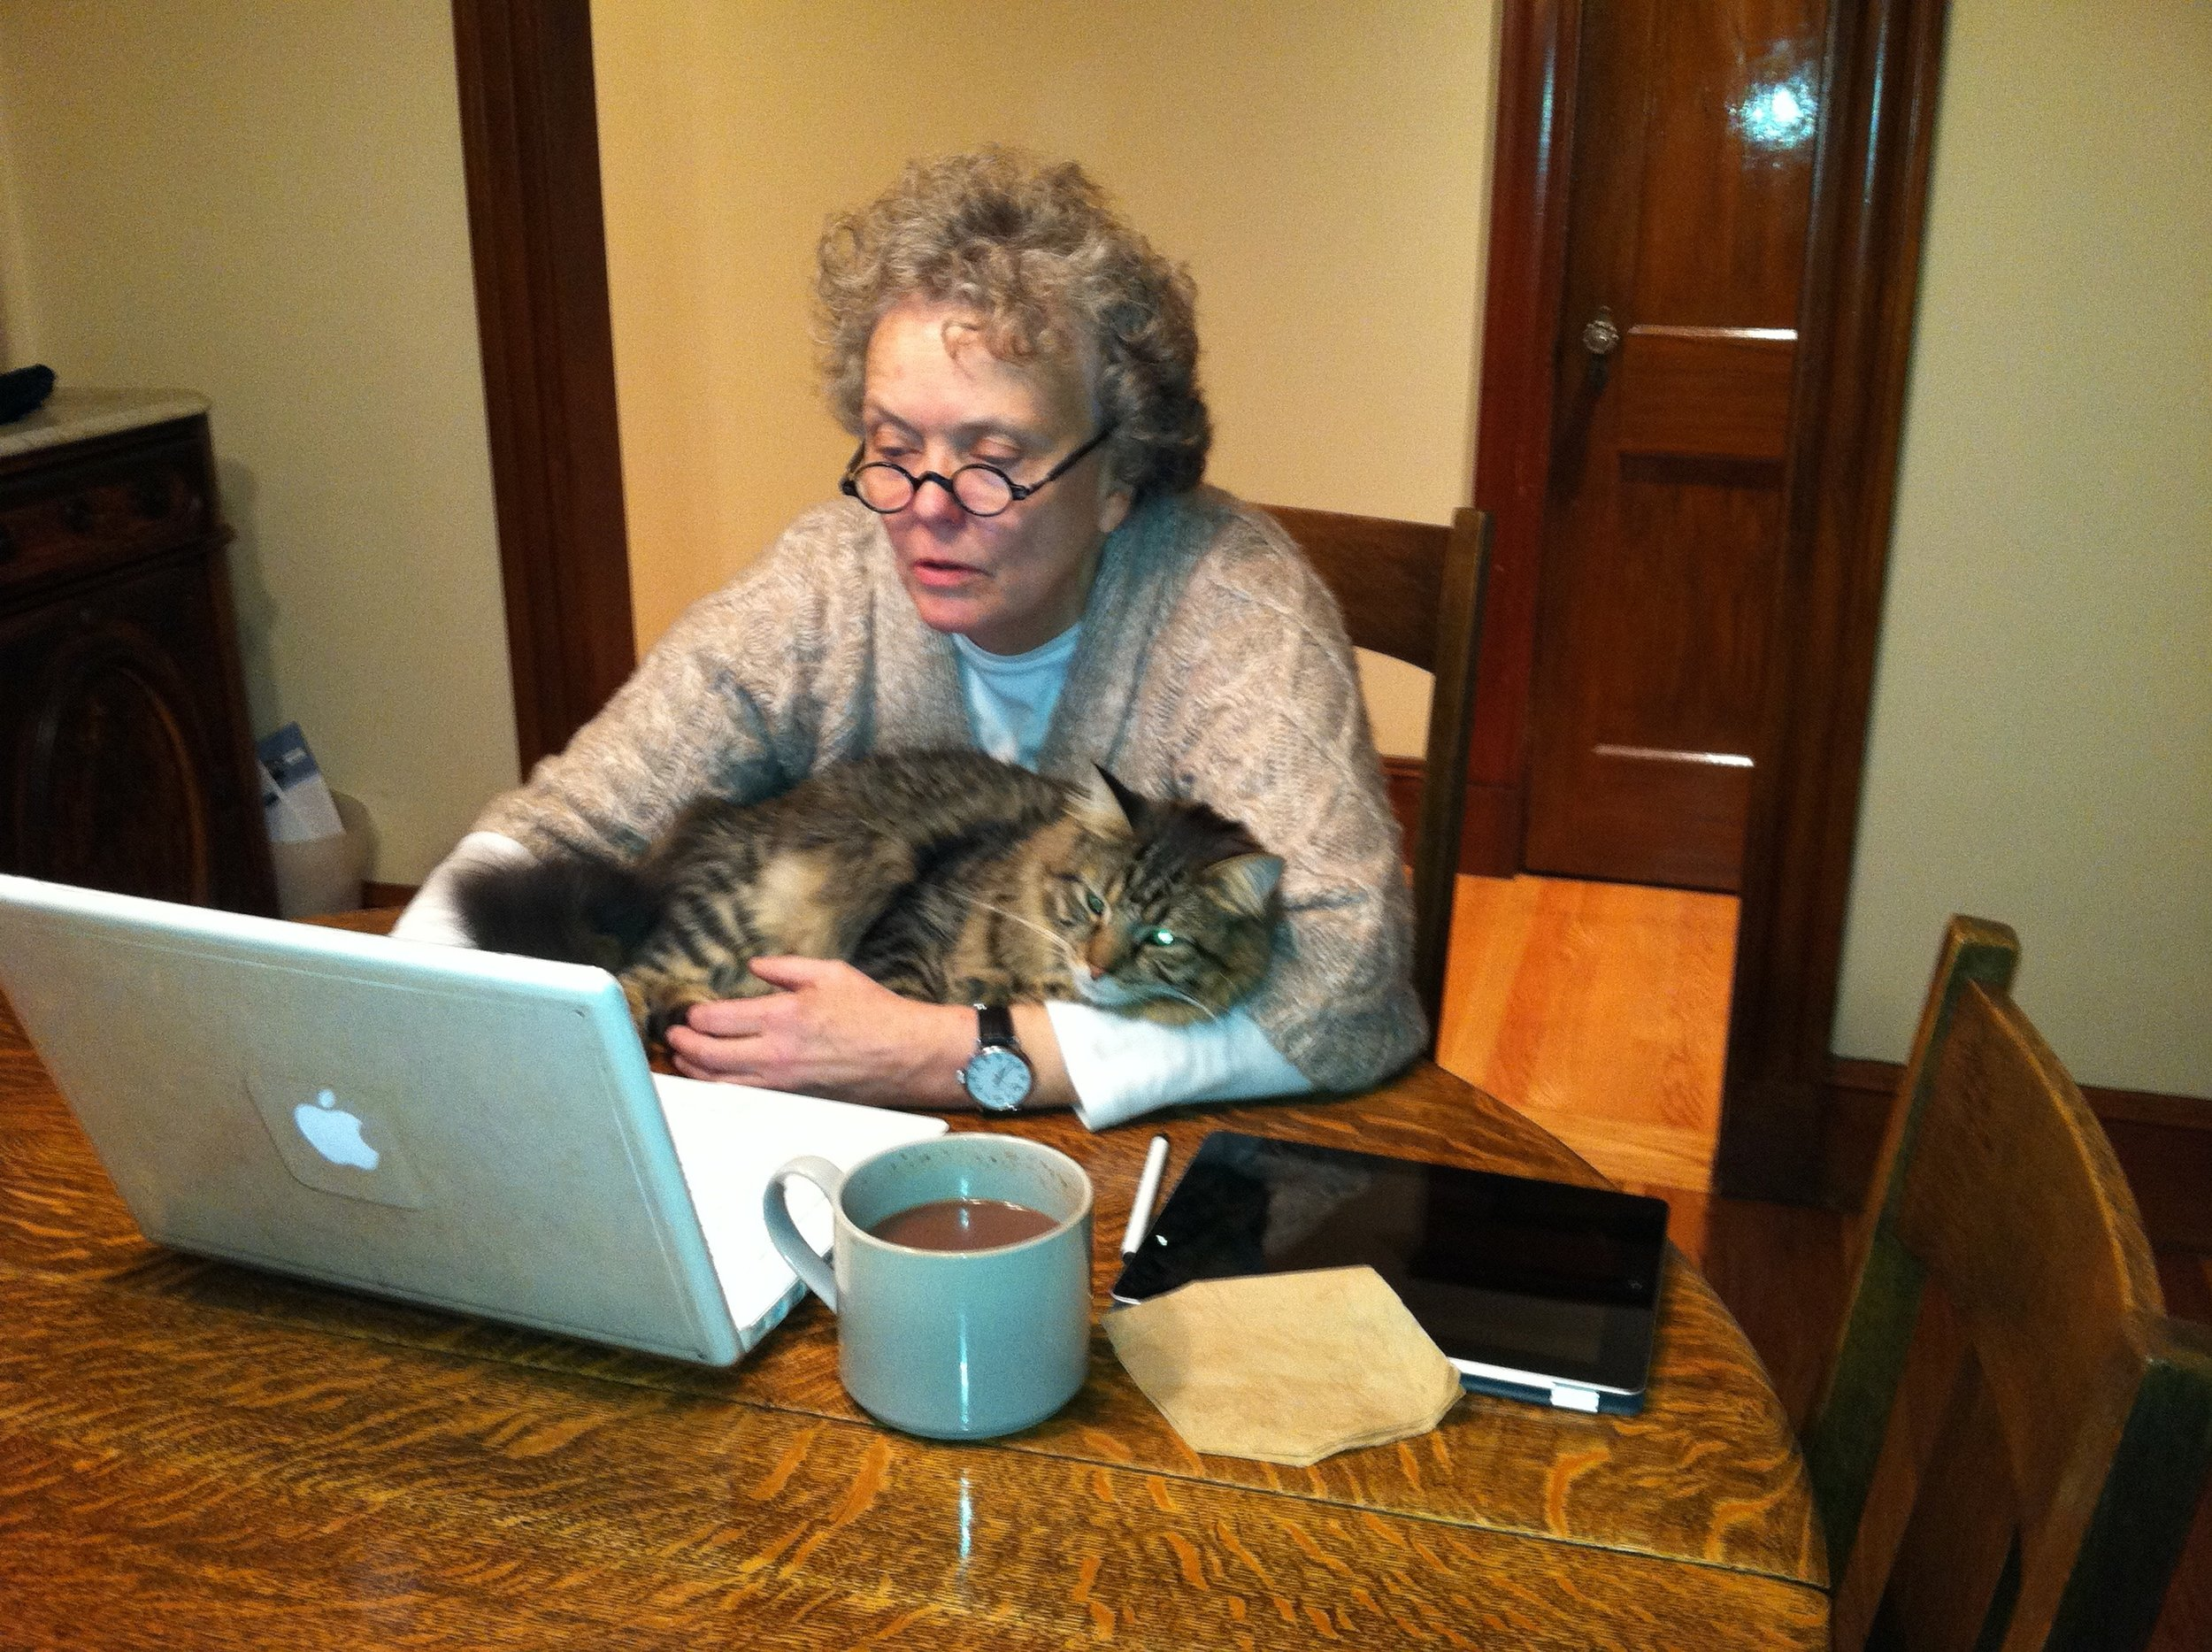 Hard at work on my next book.